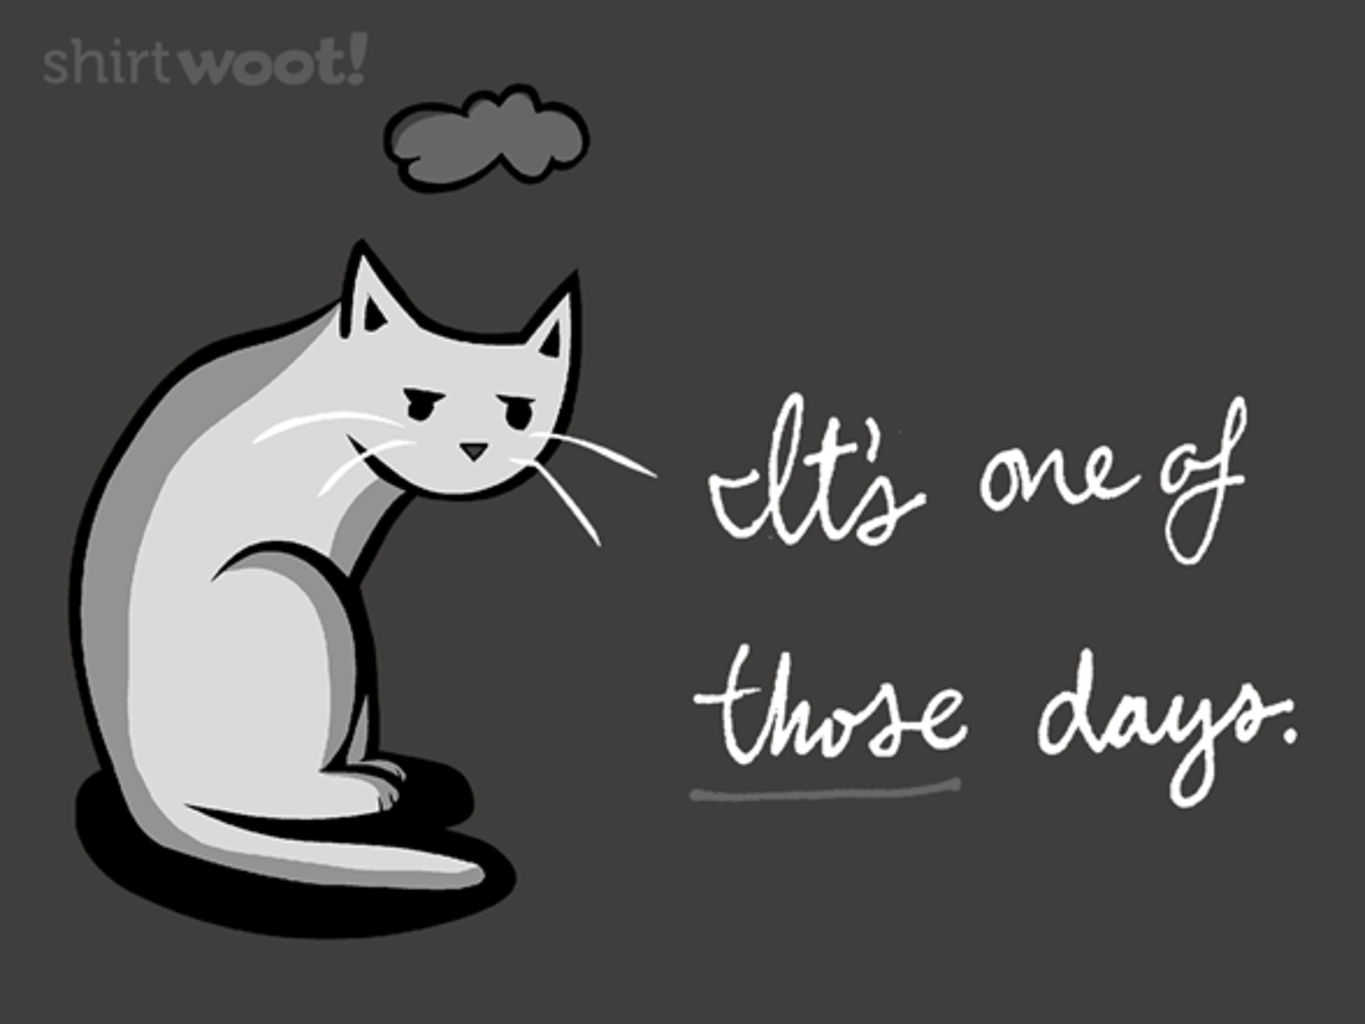 Woot!: It's One of Those Days - $15.00 + Free shipping